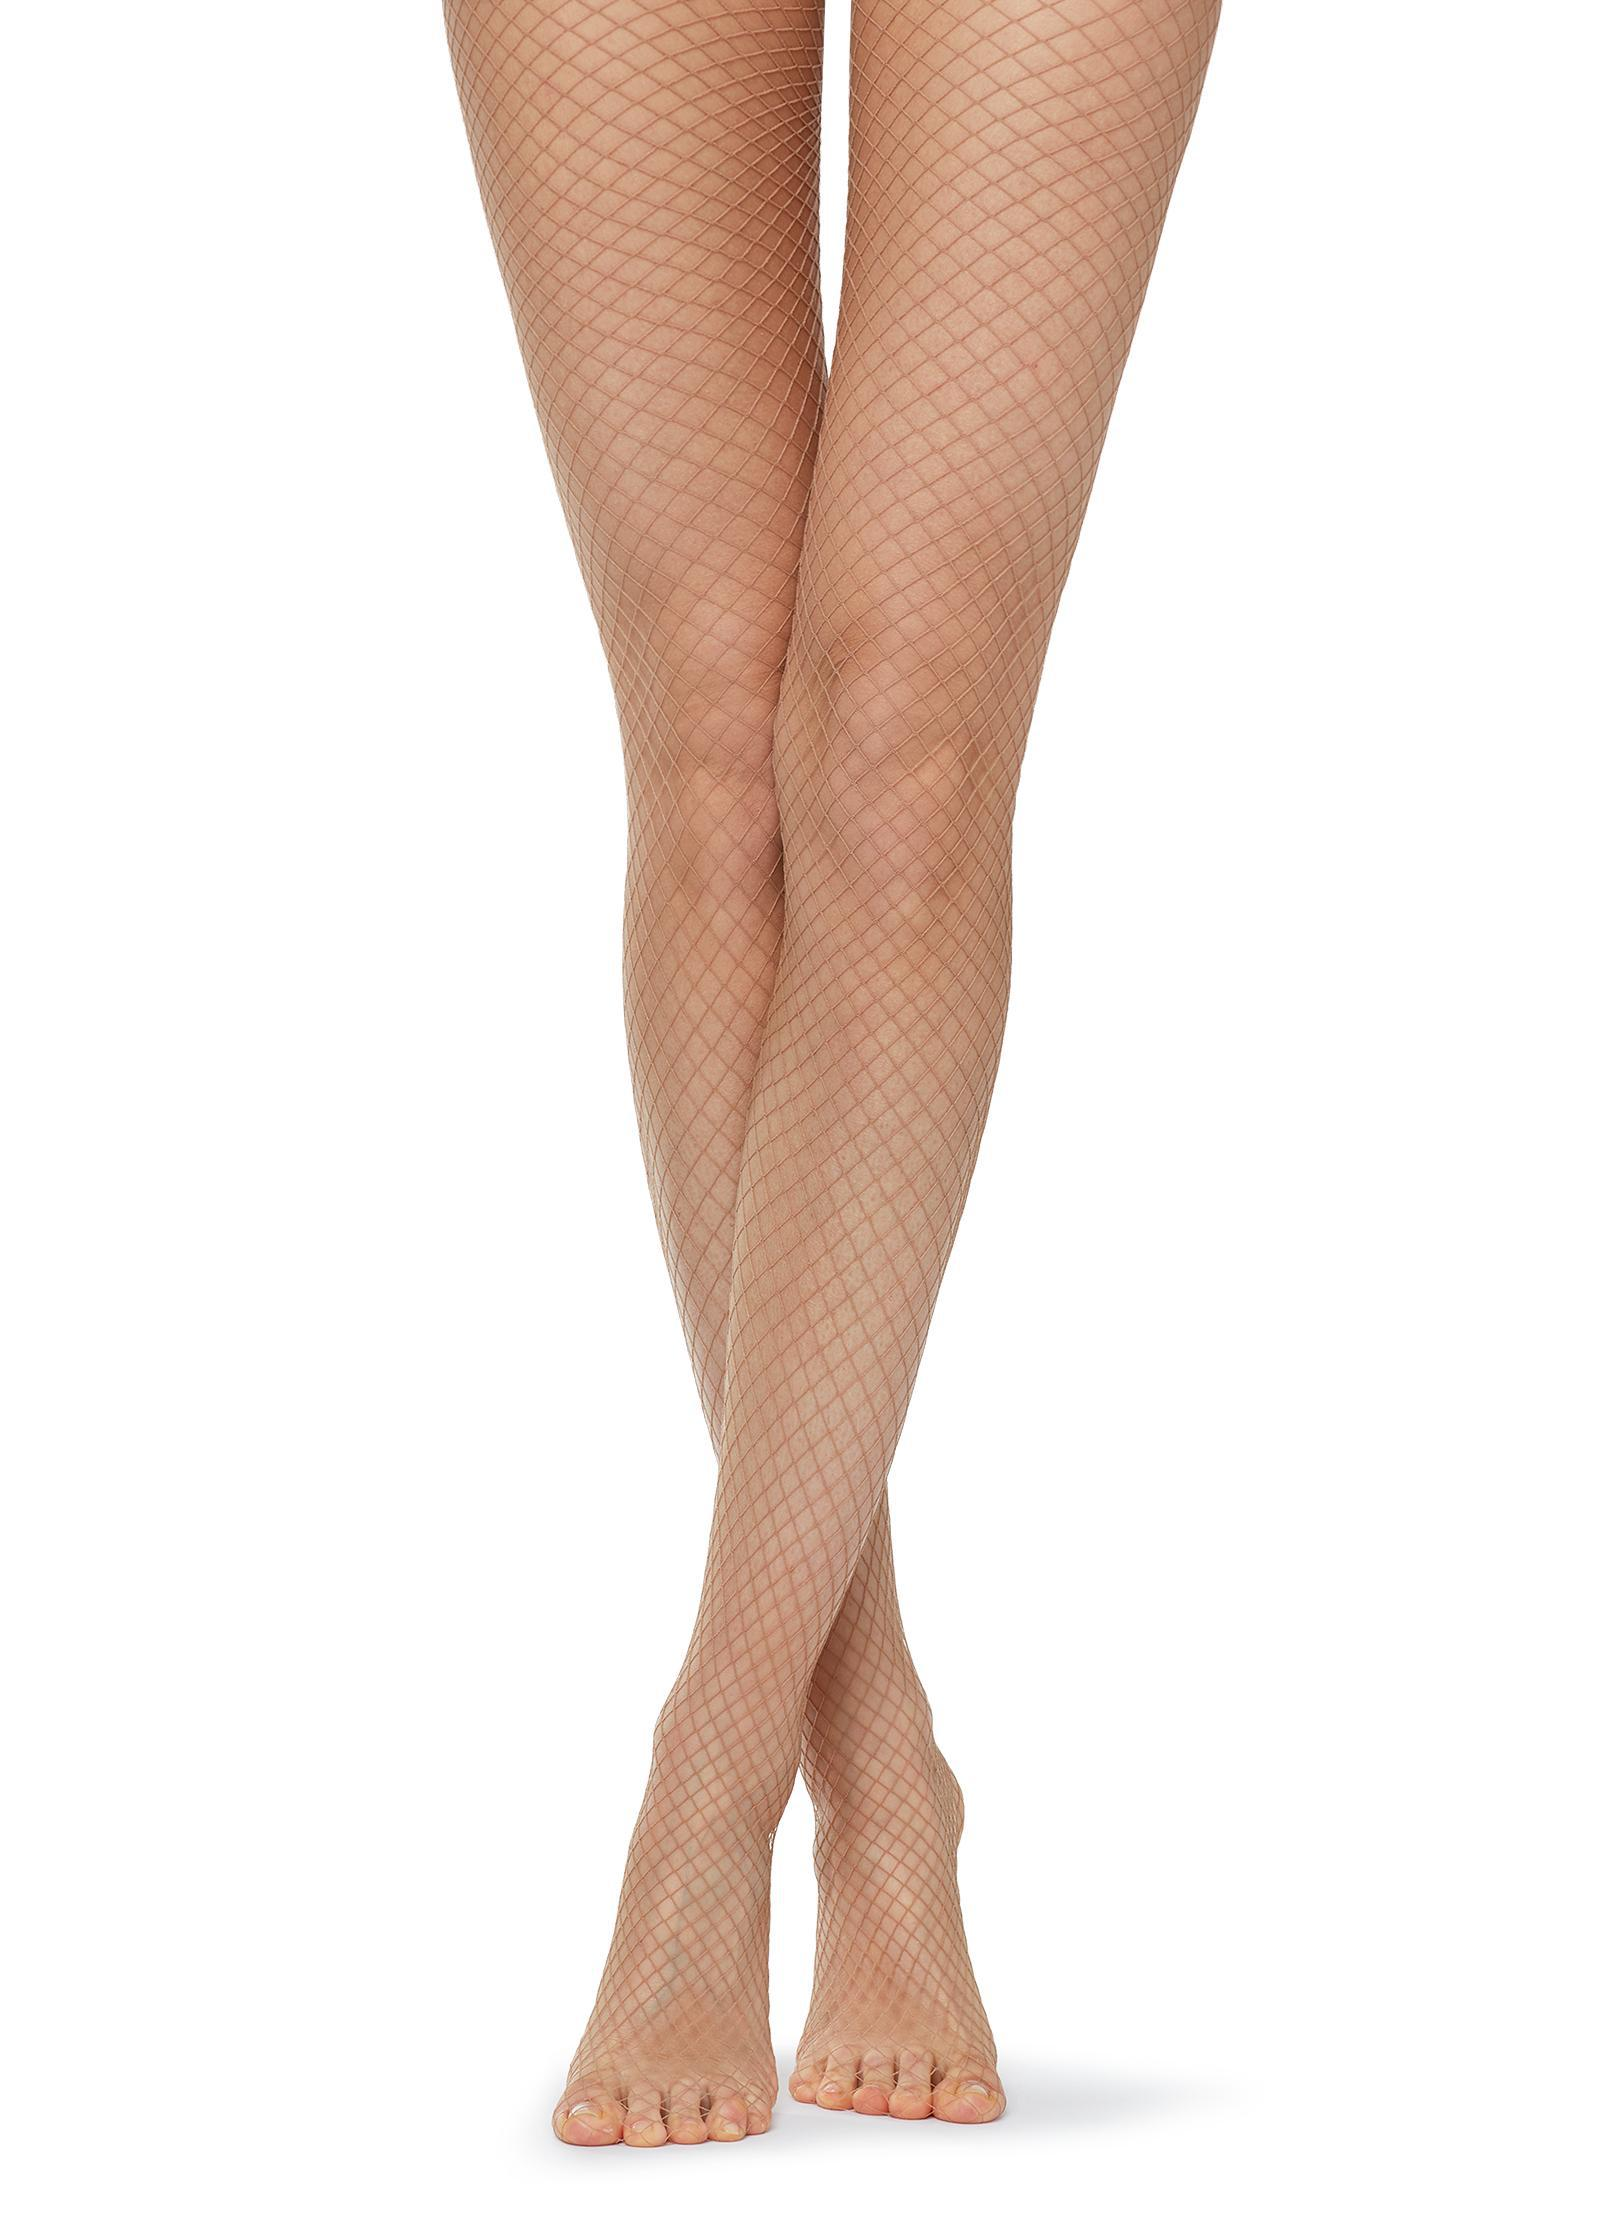 709e146b3f3 Lyst - Calzedonia Fishnet Tights in Natural